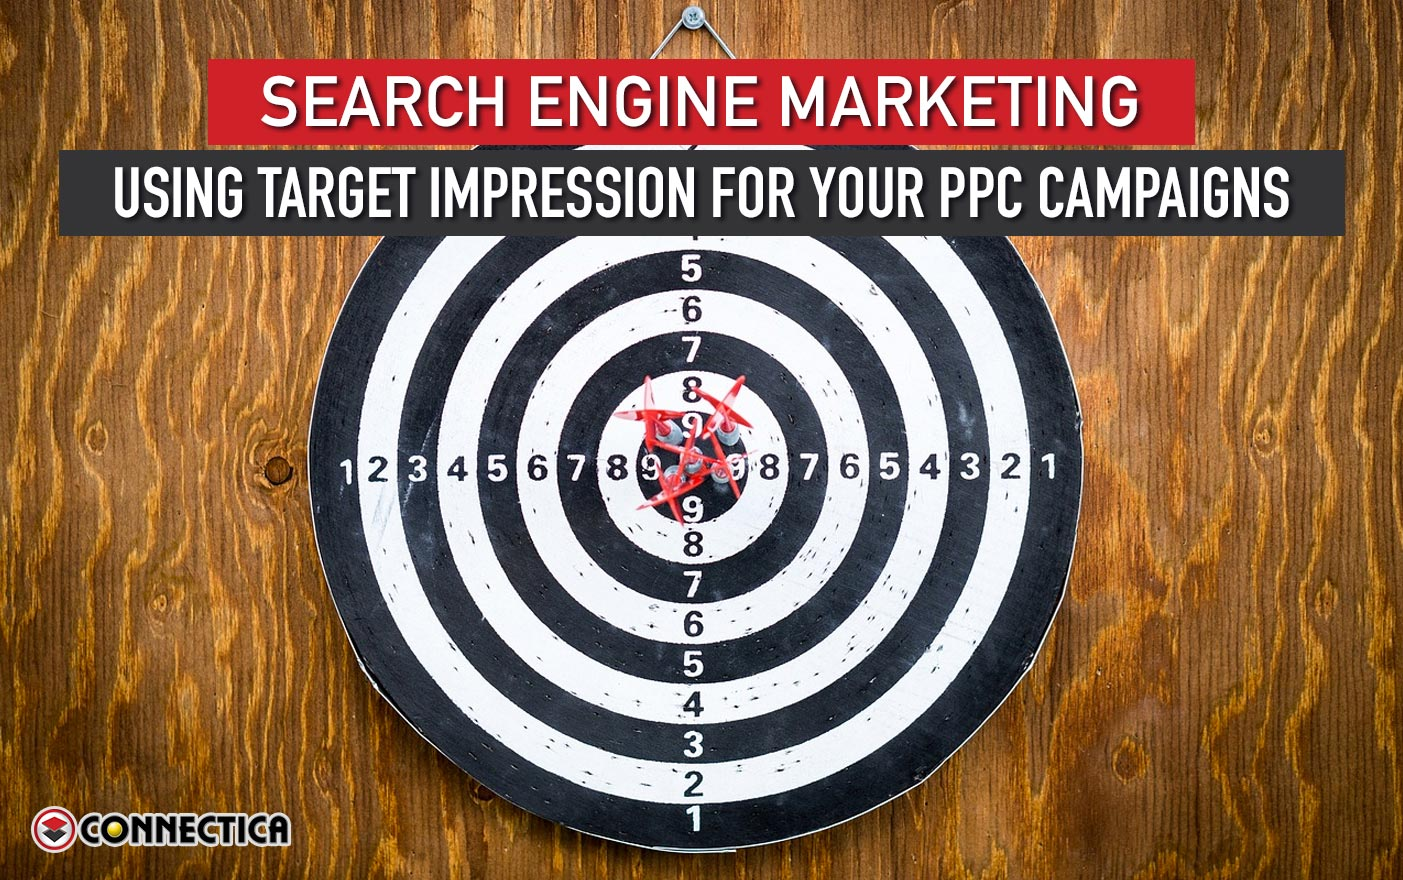 Search Engine Marketing: Using Target Impression For Your PPC Campaigns